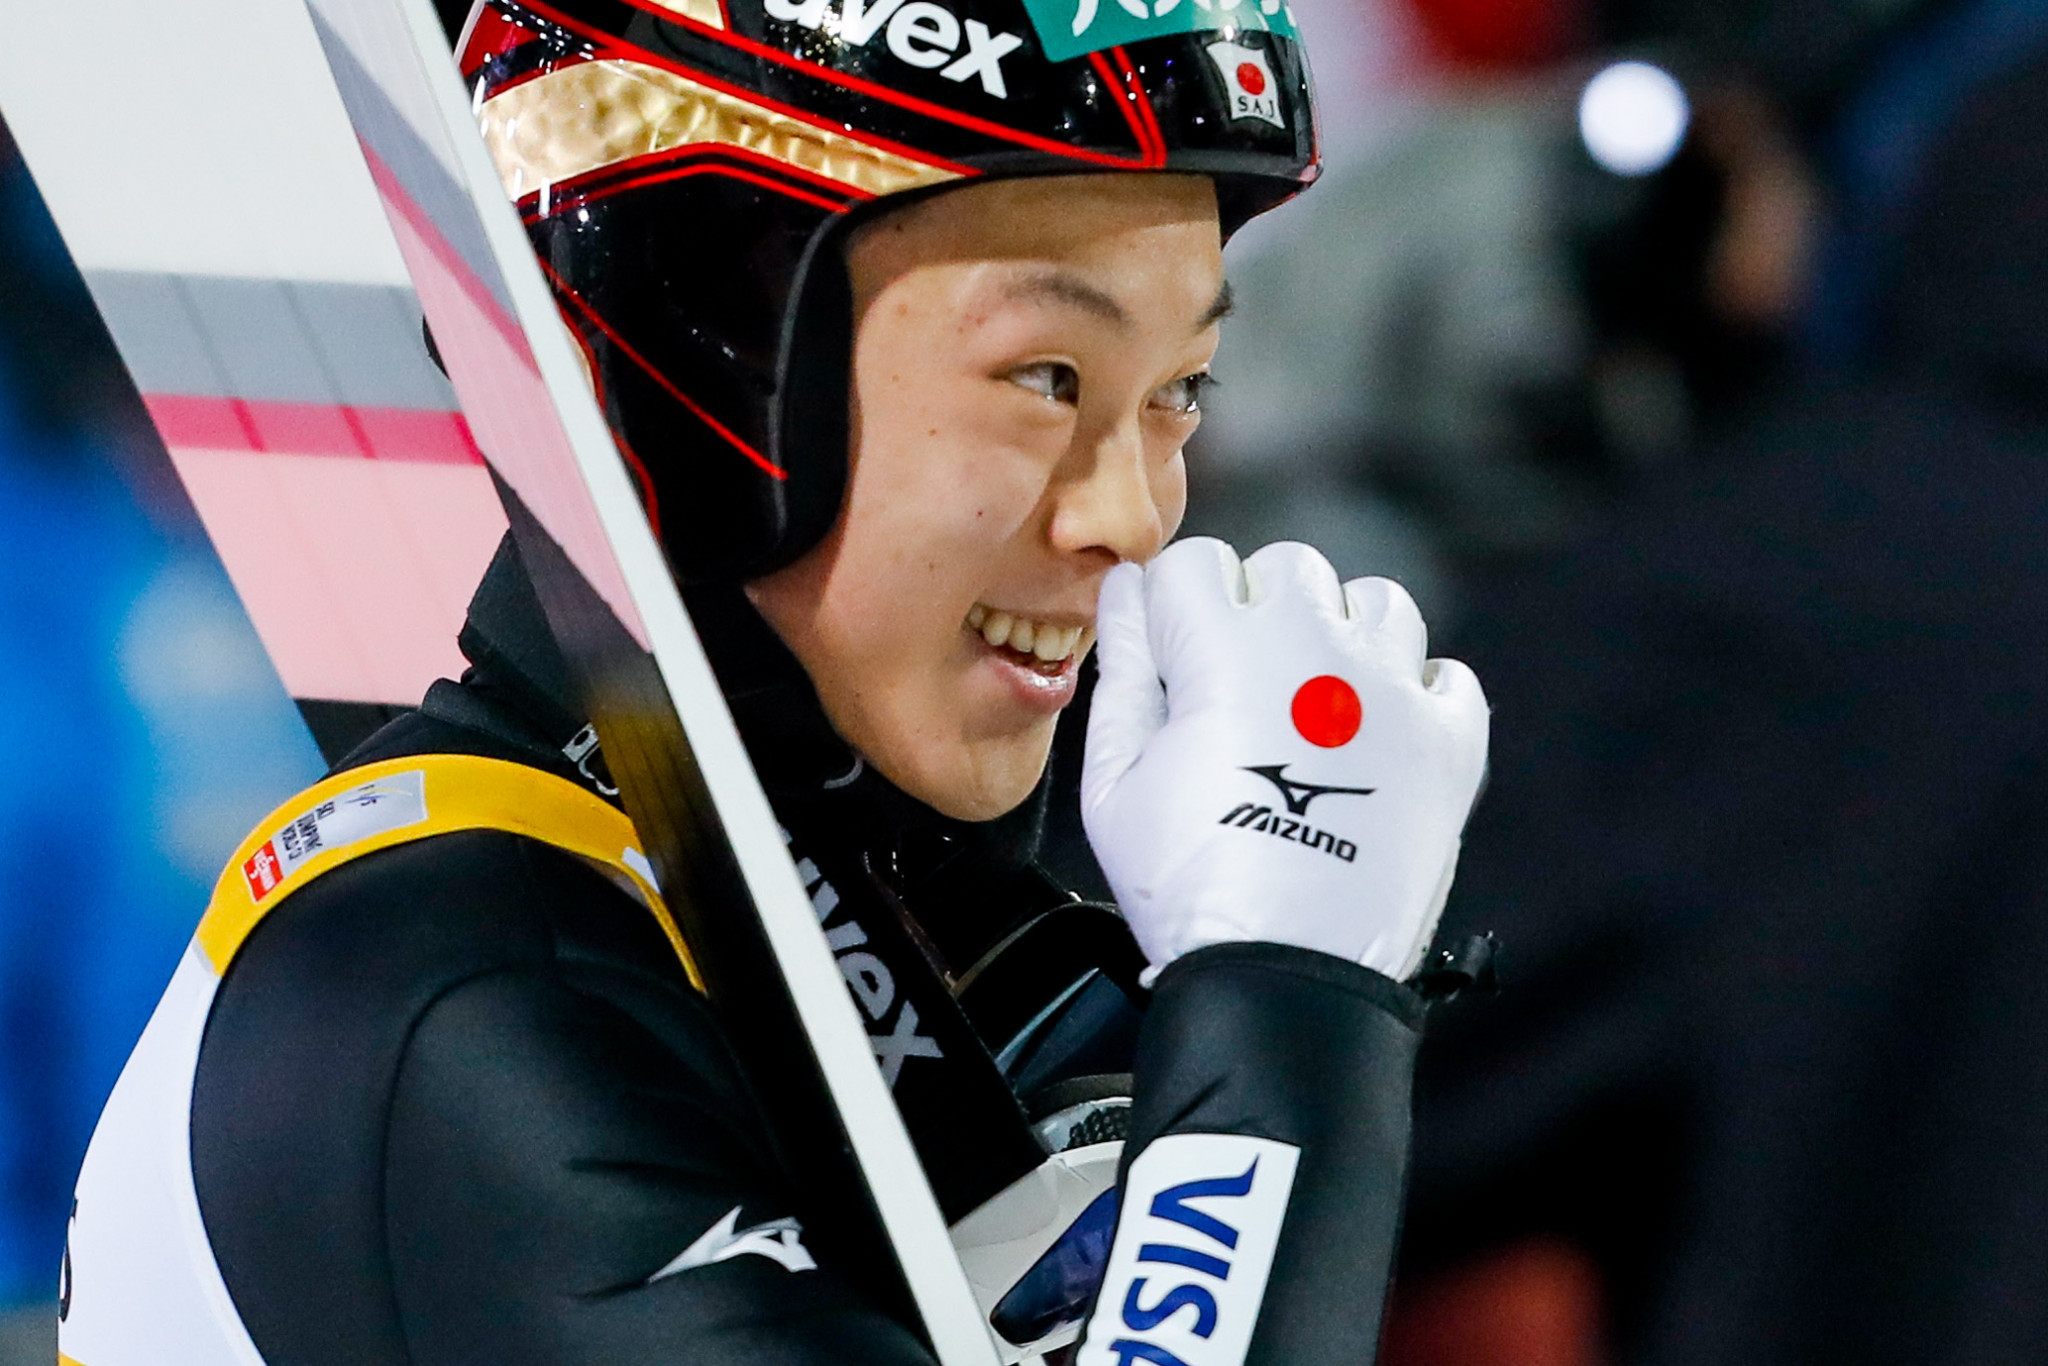 Japan's Ryoyu Kobayashi won in Oberstdorf for the first time in six events ©Getty Images